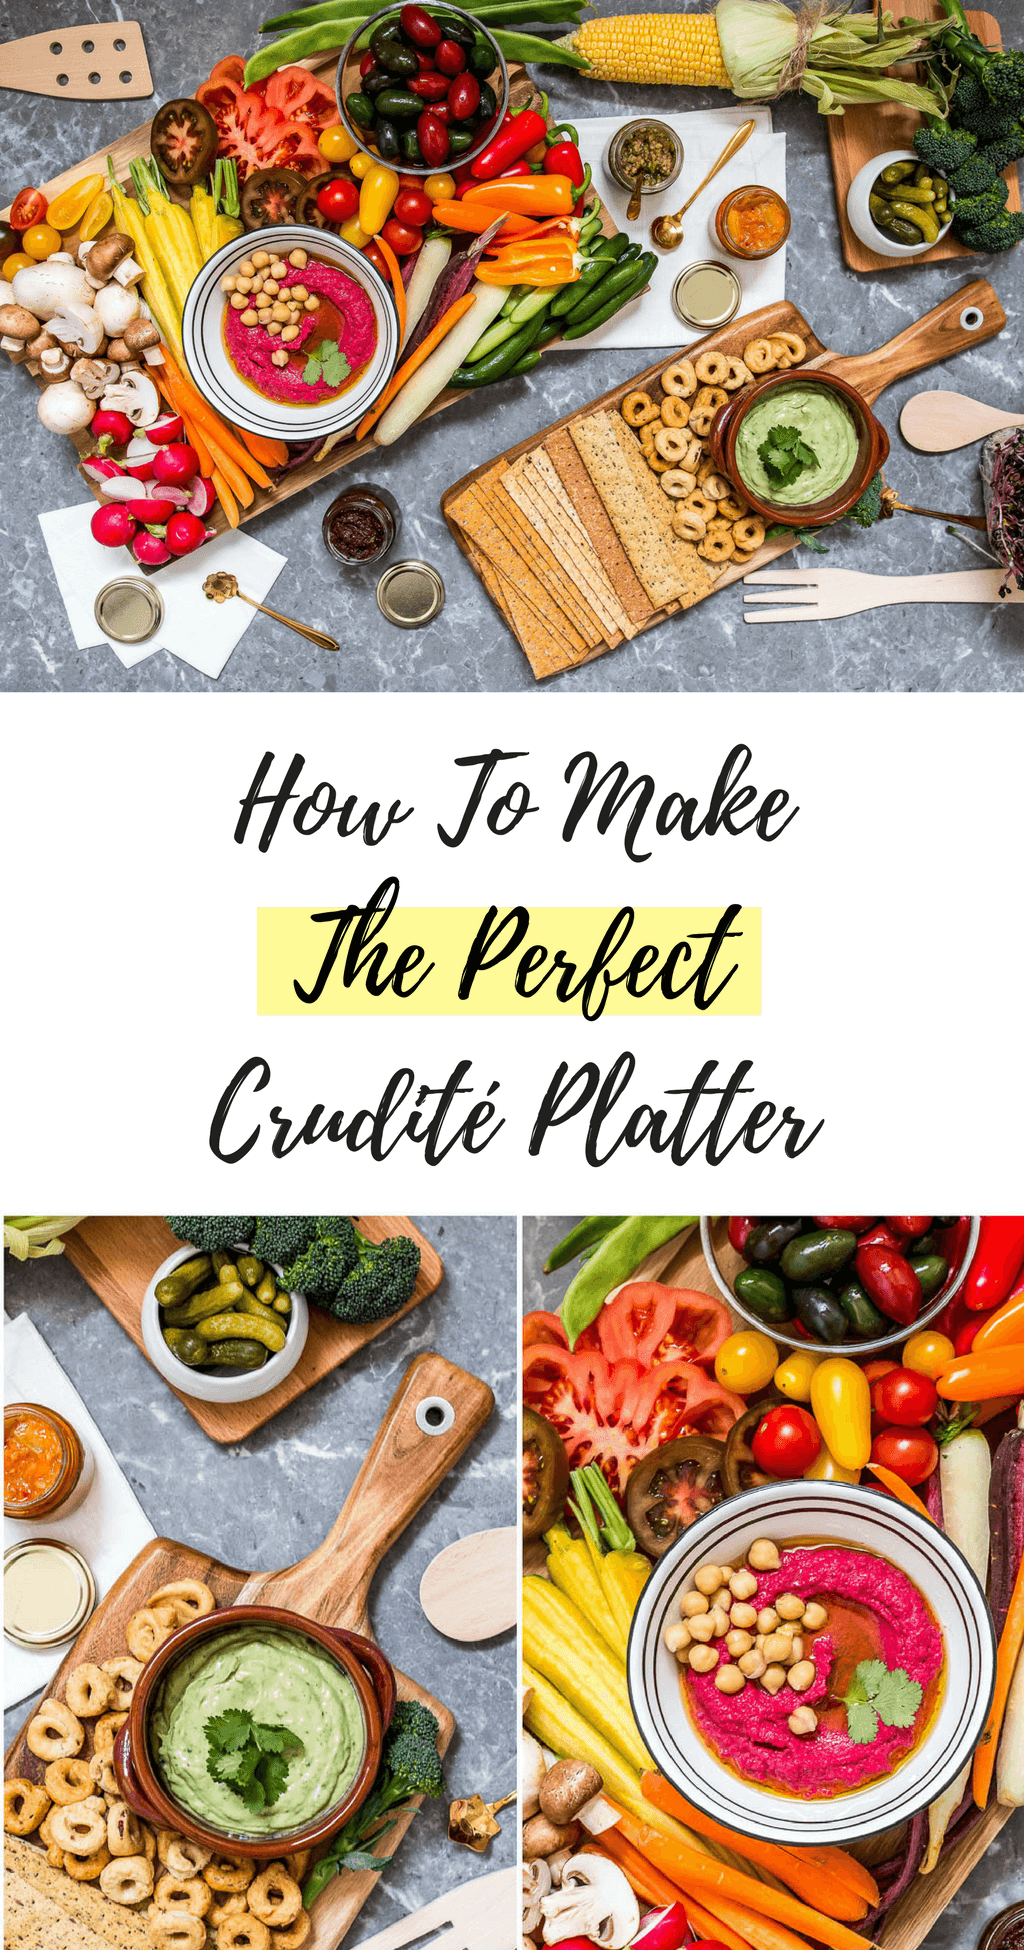 Learn How To Assemble The Most Gorgeous Crudité Platter! Fresh veggies, homemade healthy dips {beet hummus and avo-yogurt !} and healthy carbs! Click through for the full article featuring a step by step video tutorial @ hedonistit.com